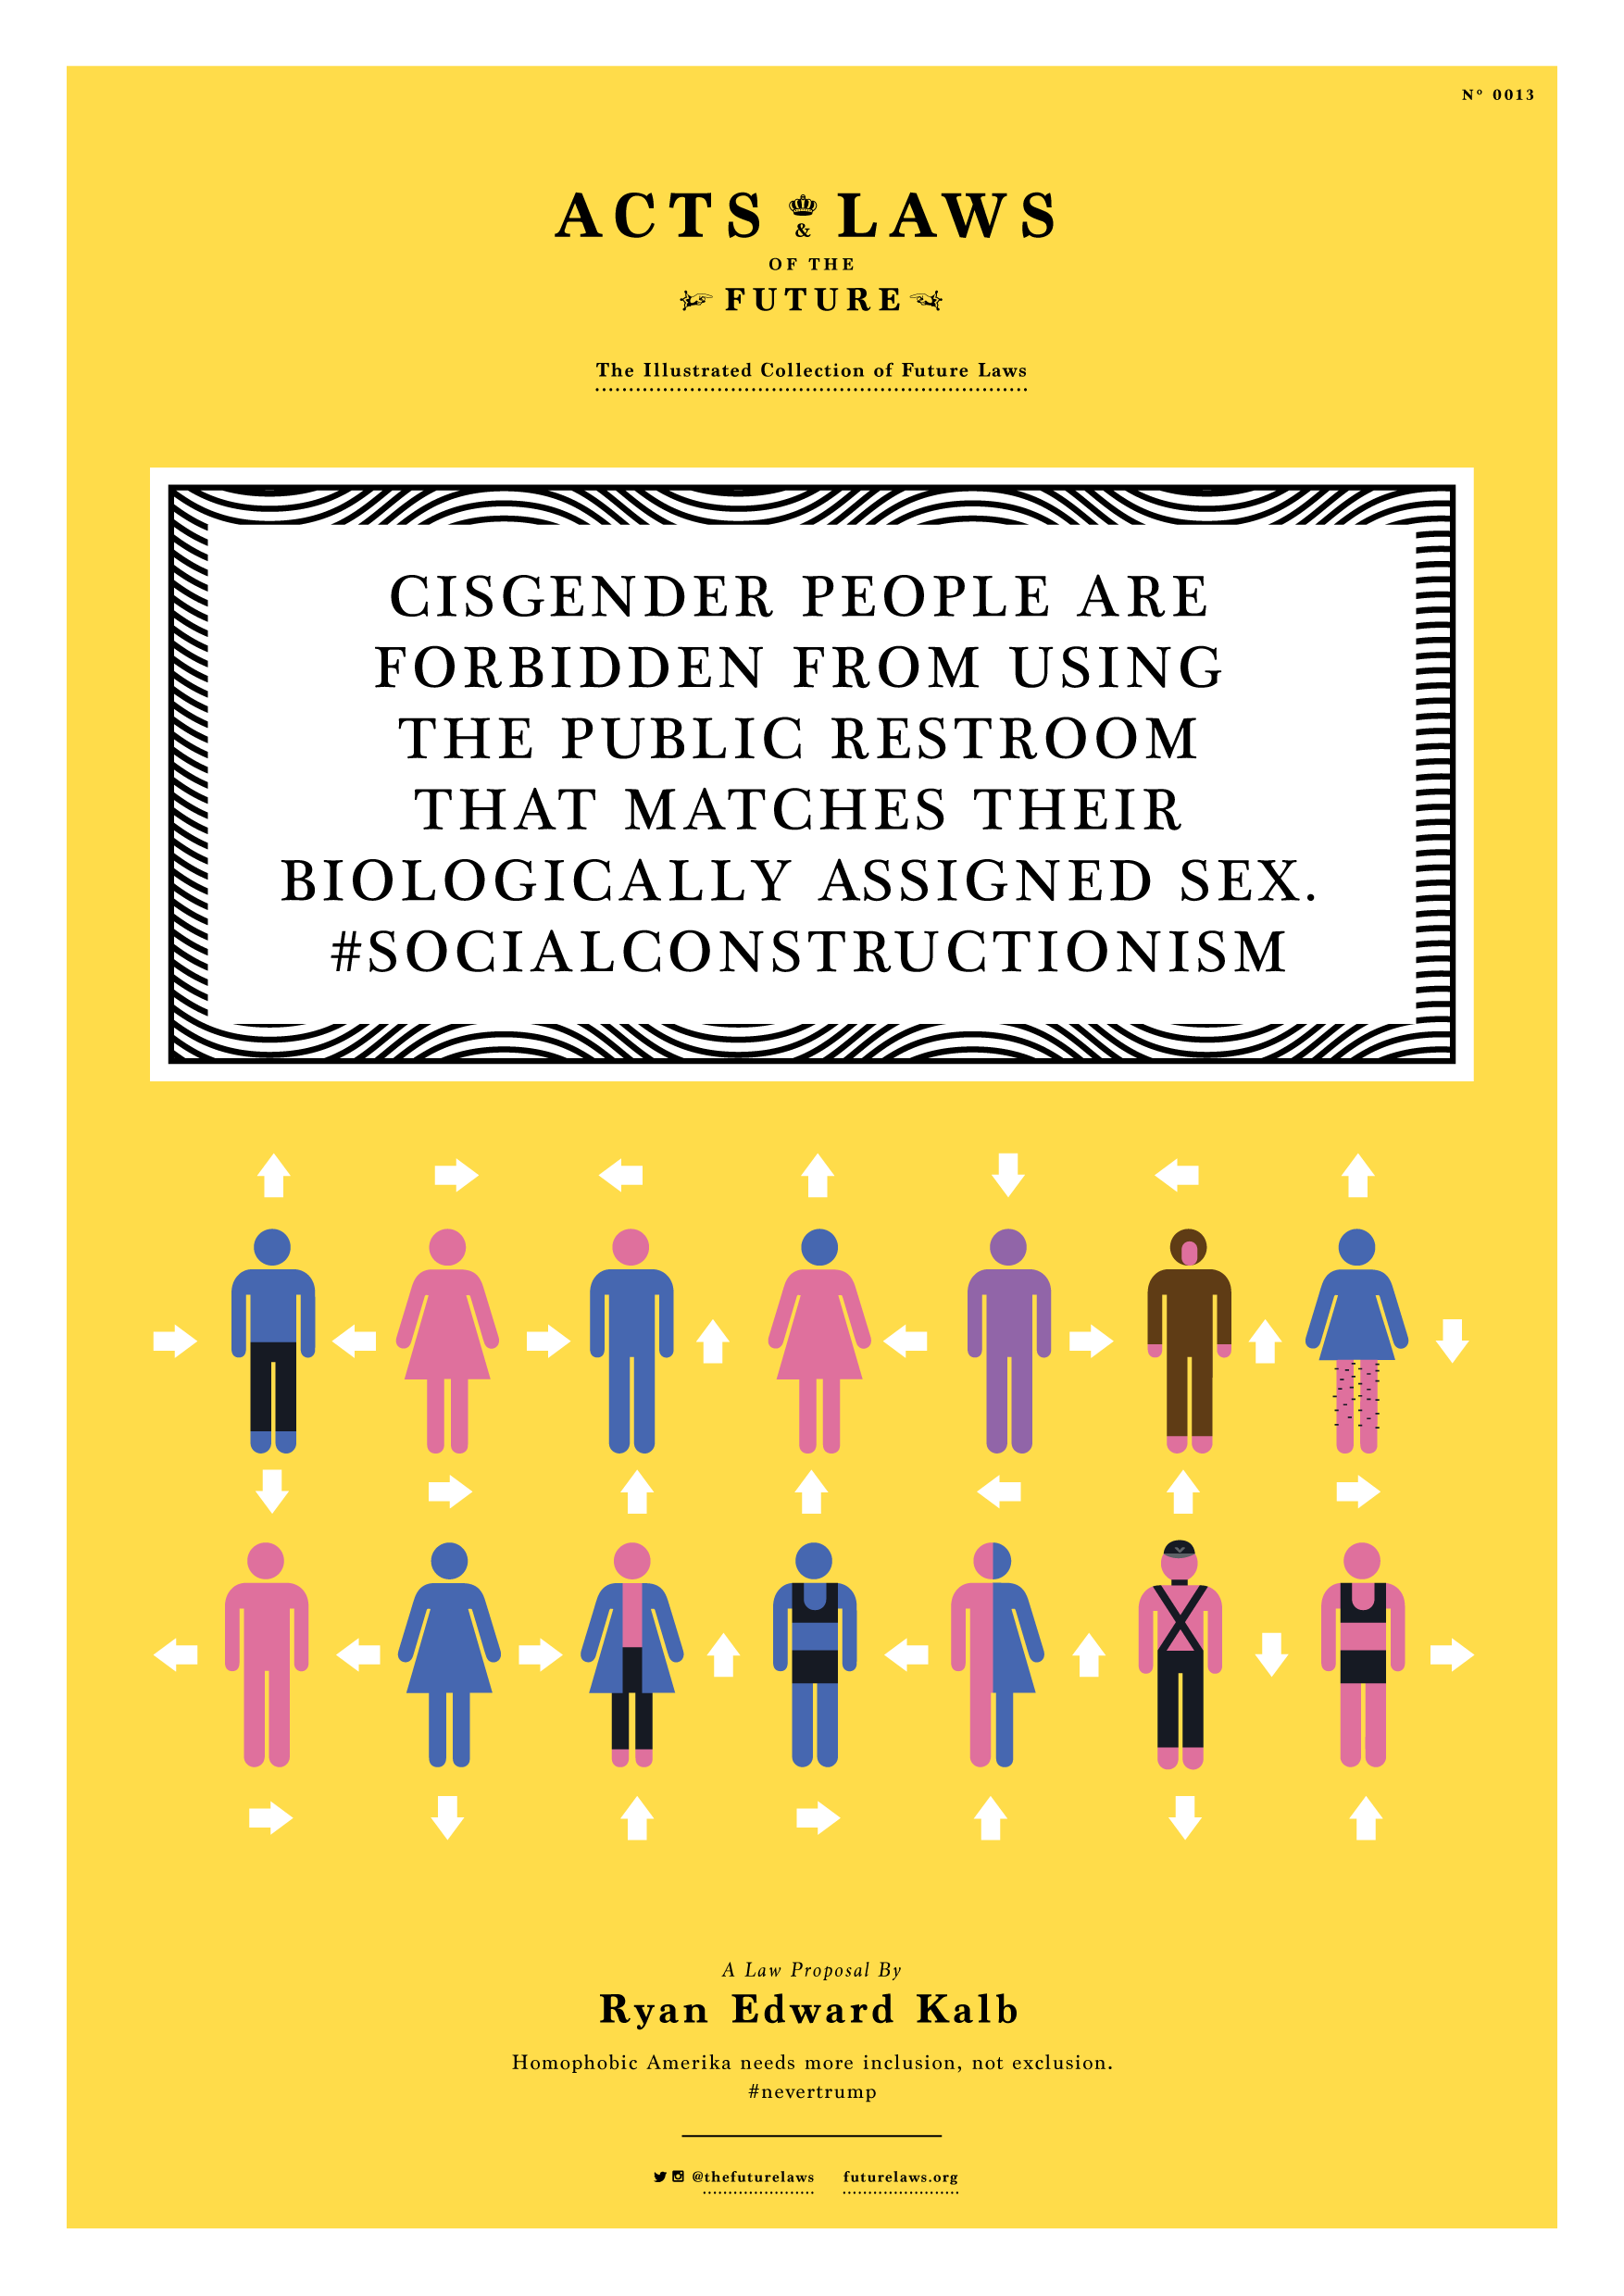 Cisgender people are forbidden from using the public restroom that matches their biologically assigned sex. #socialconstructionism